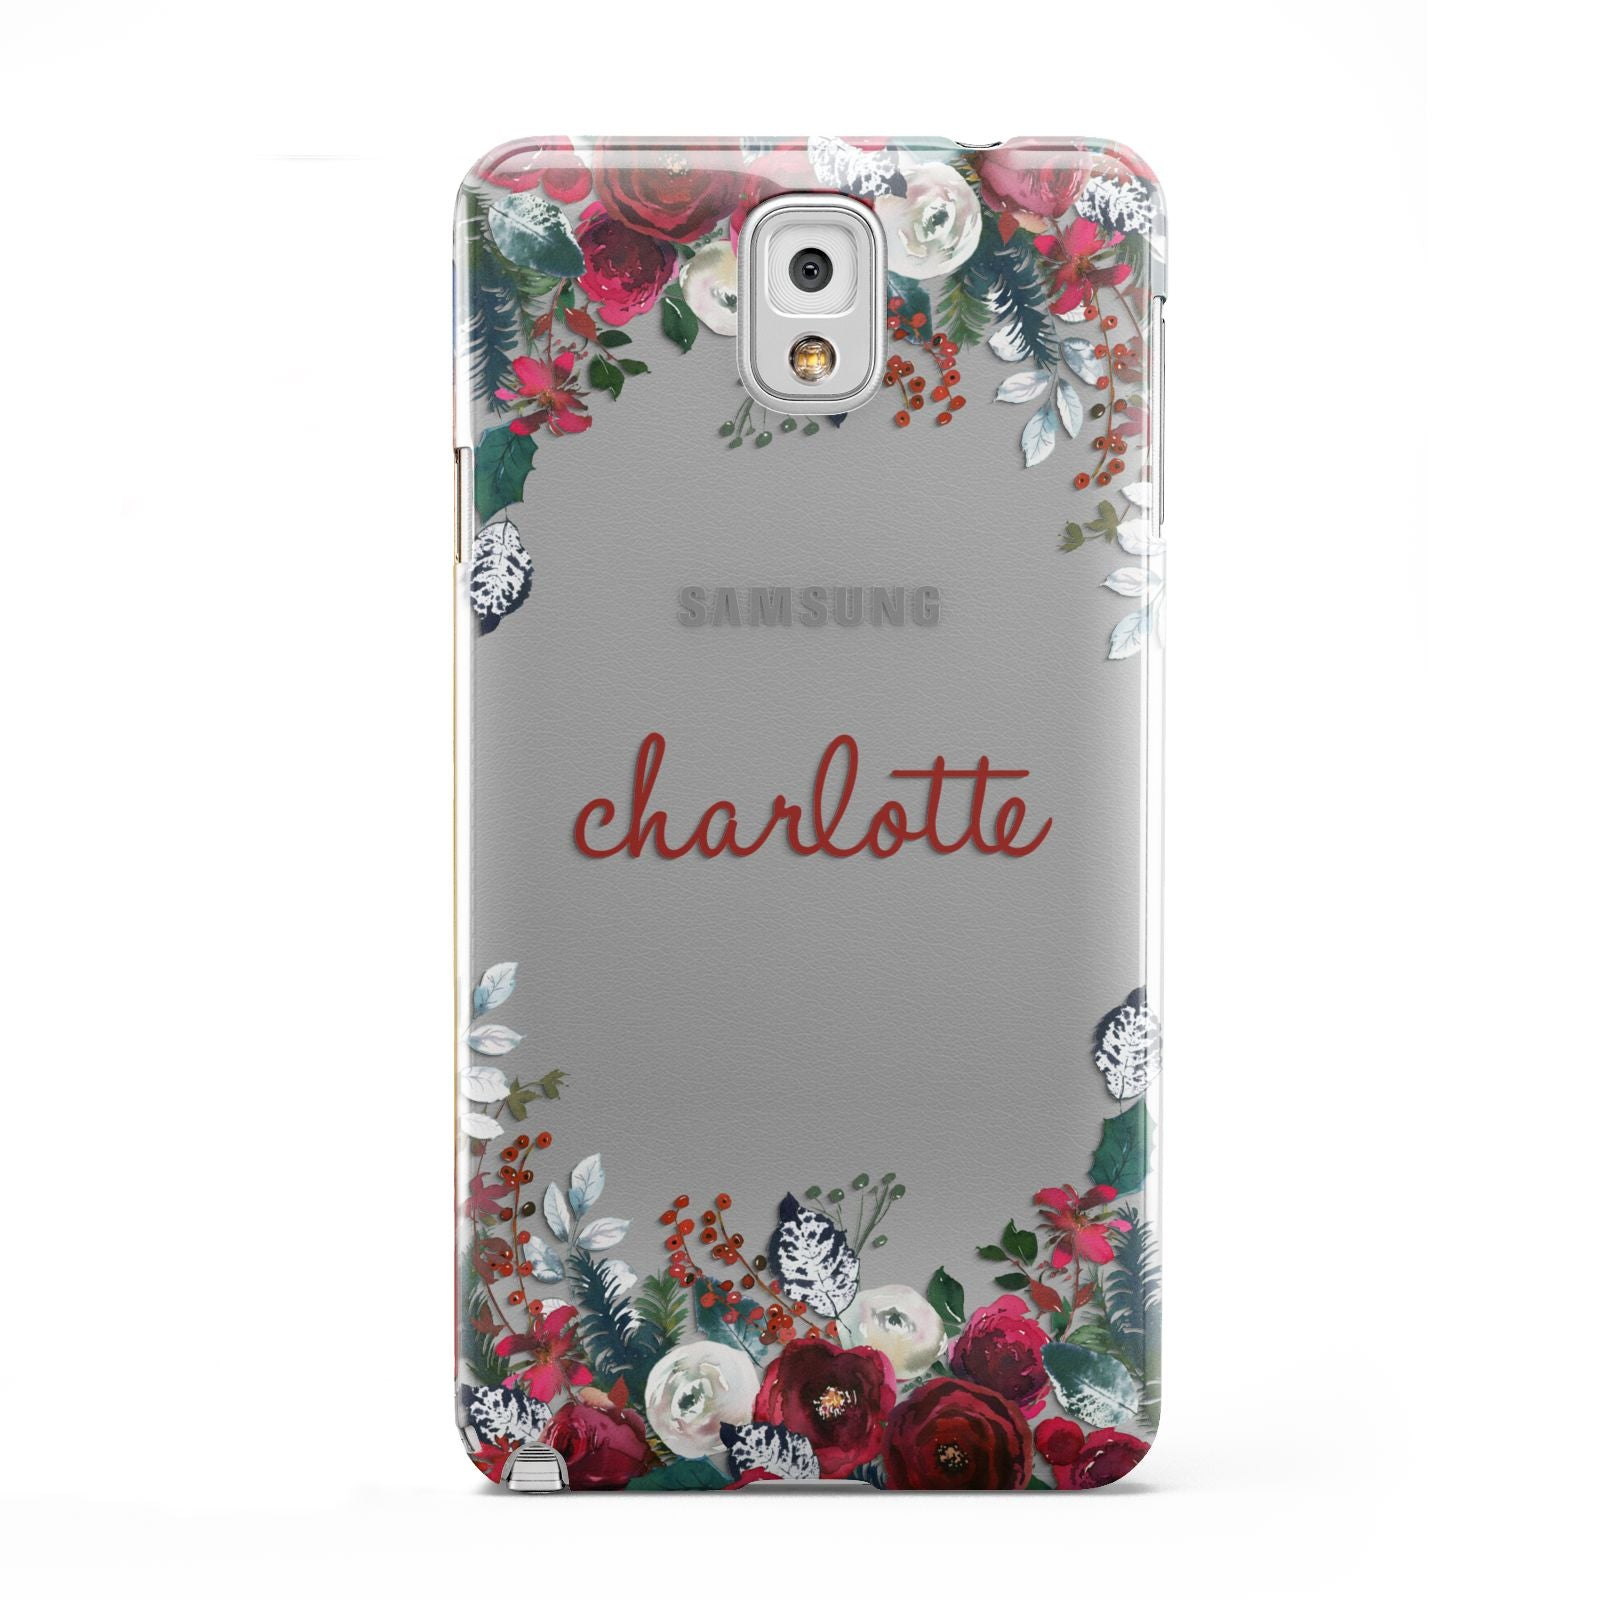 Christmas Flowers Personalised Samsung Galaxy Note 3 Case